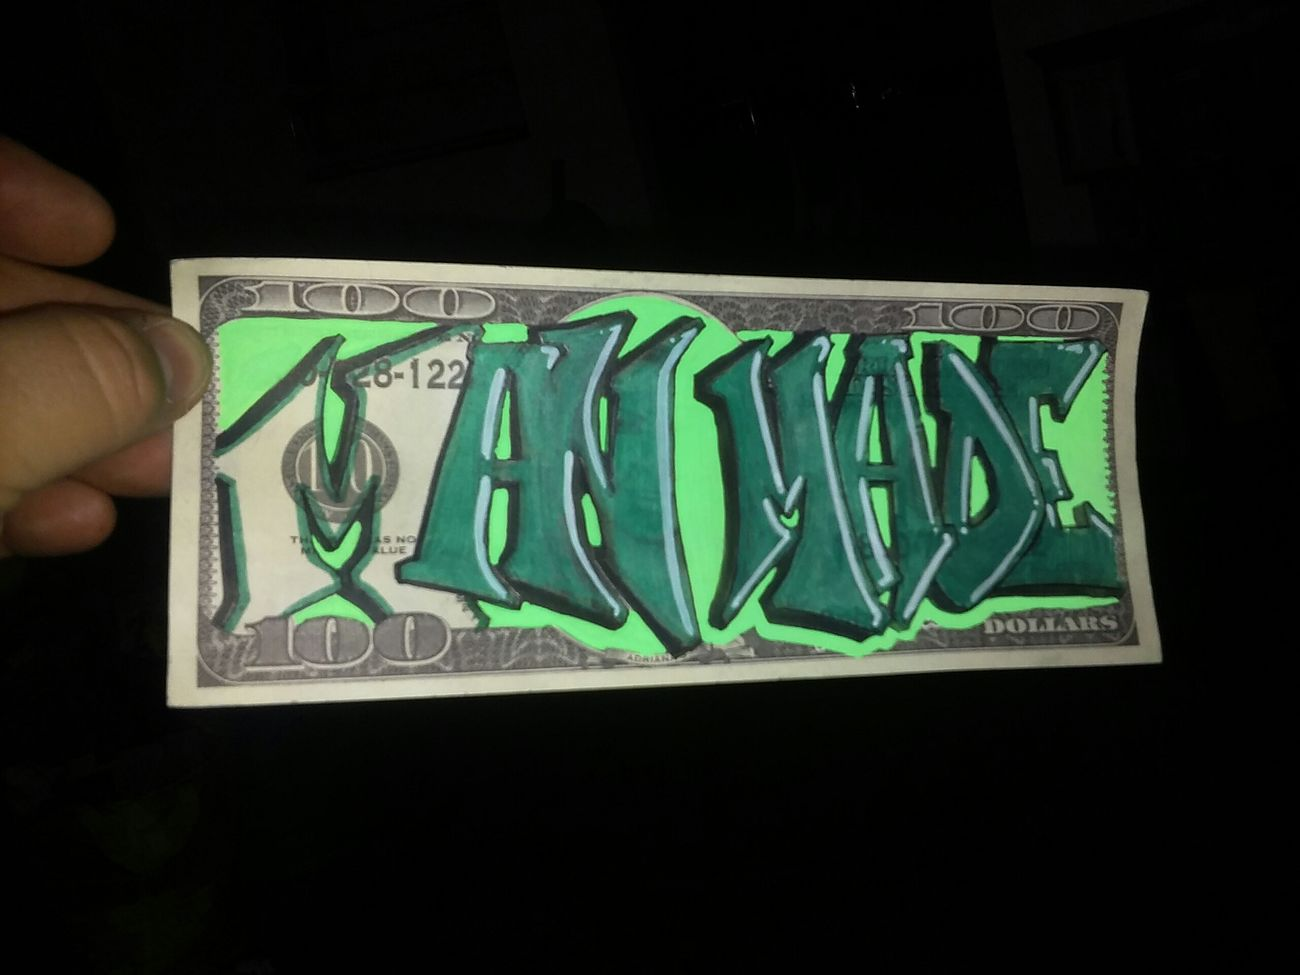 Man made. Hello World Graffiti Art Typography Notes From The Underground Long Beach California Type Lettering Graffiti Art Mecks1 Artsy Graffitiporn Art, Drawing, Creativity Graffiti Writers 100 Dollars $100 Green Doodles Feria